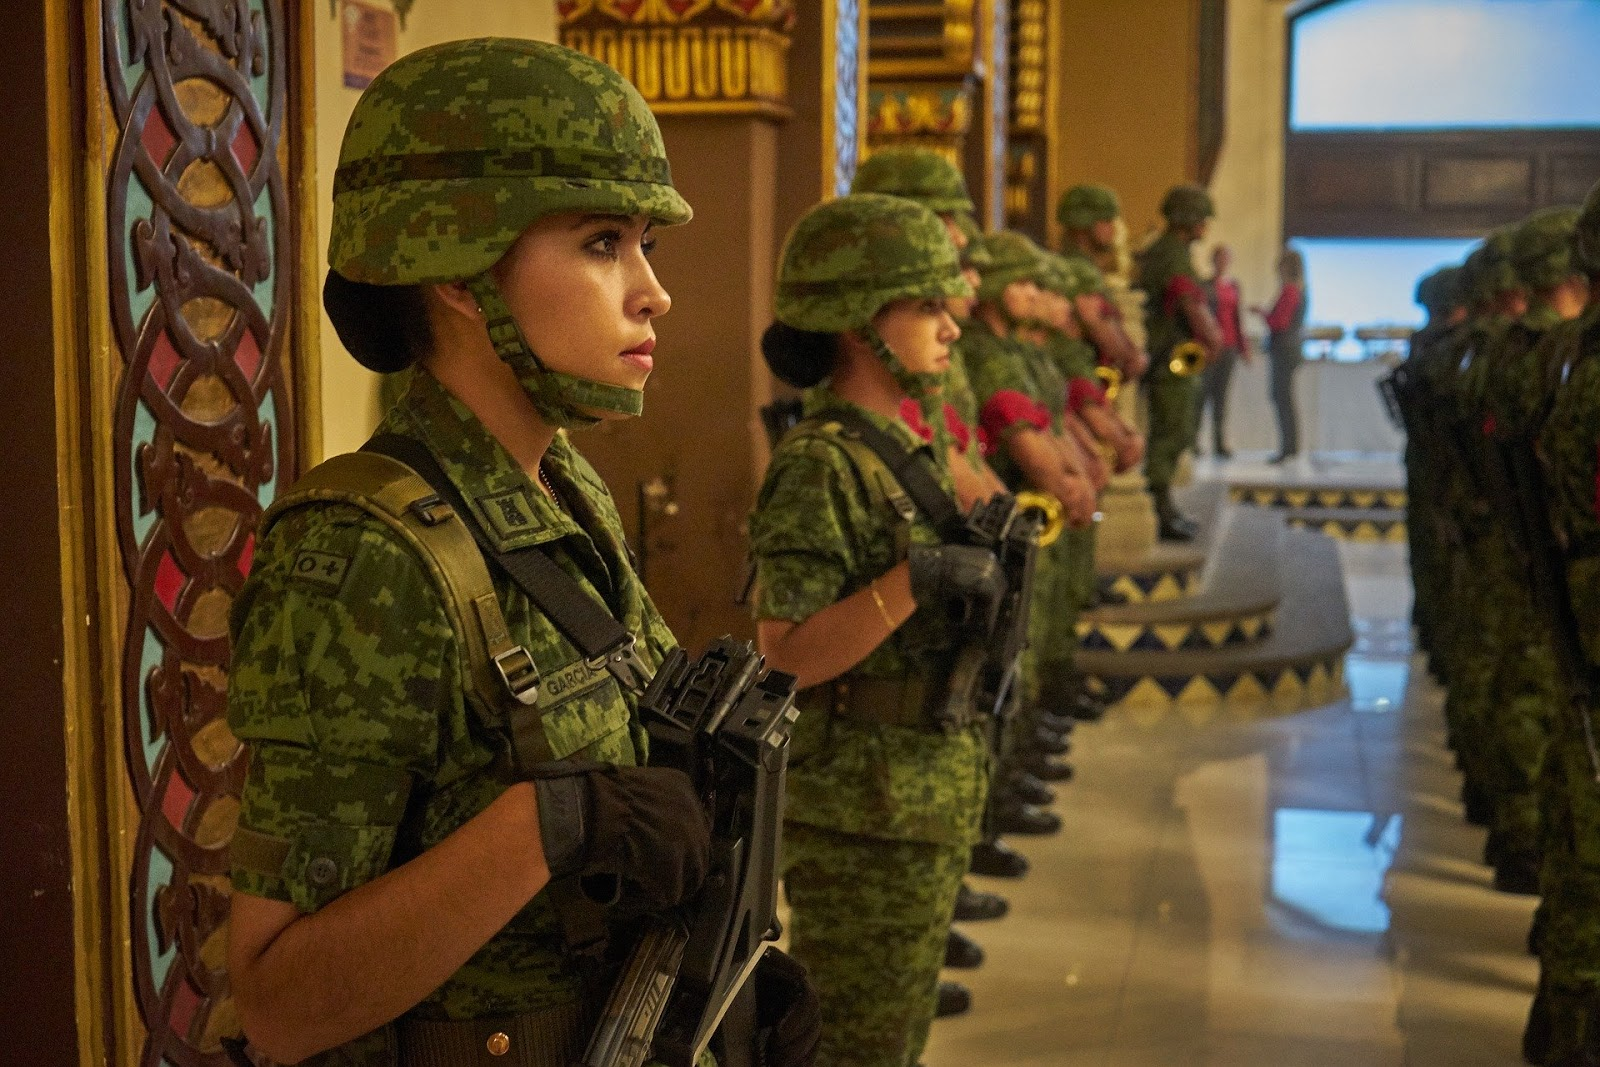 a row of women soldiers at attention with their rifles for blog post about movies and women in combat